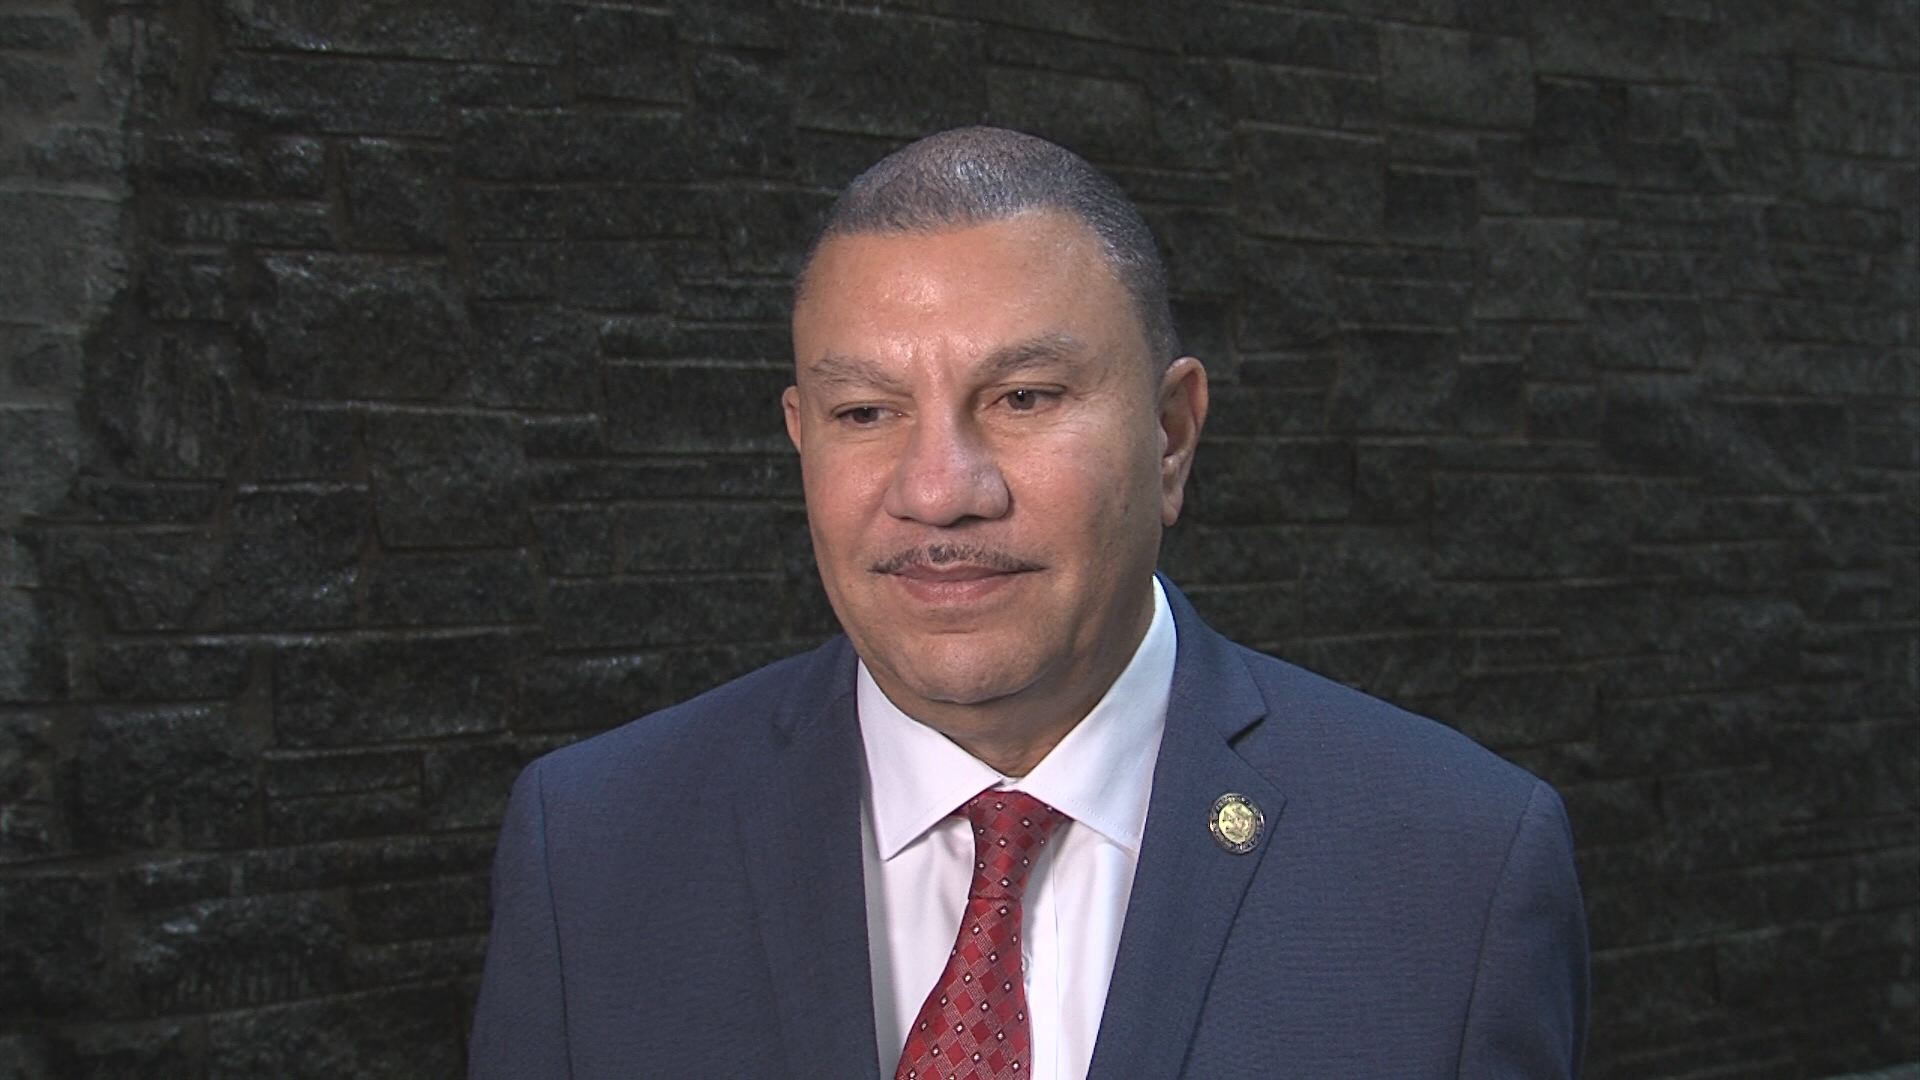 Ramos Discusses Issues on Preventing Gang Violence and Schools